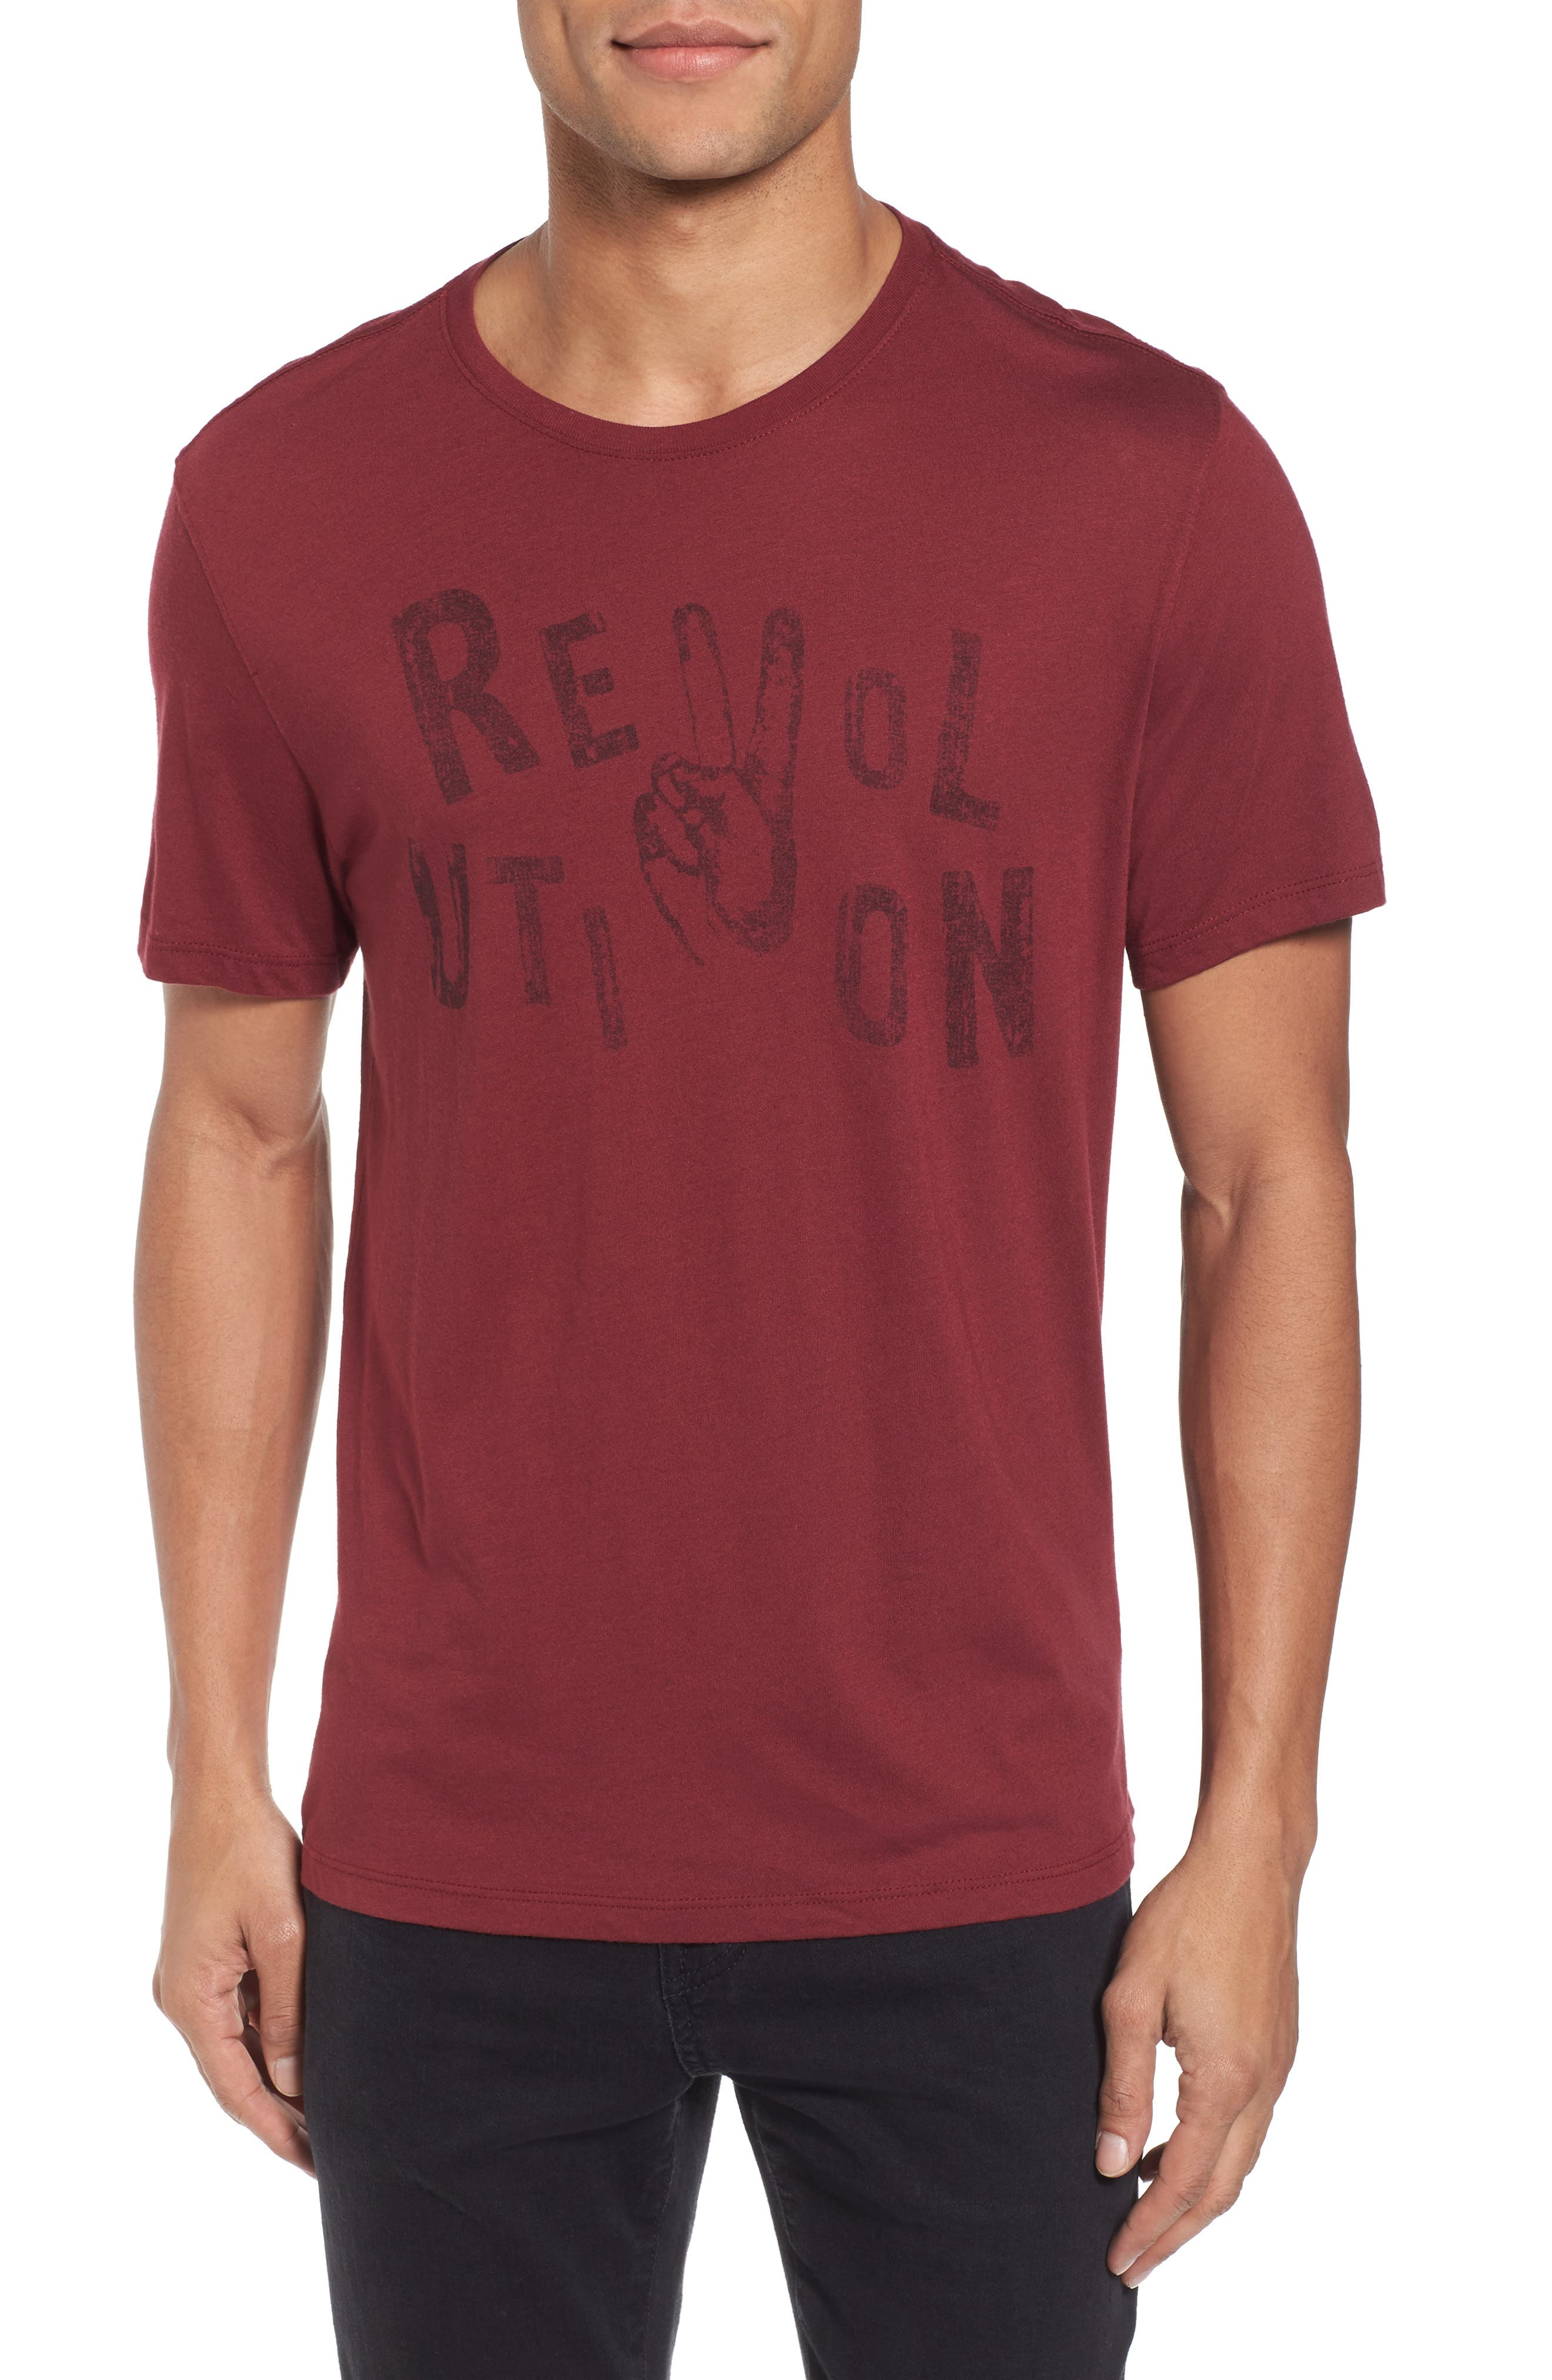 Revolution Graphic T-Shirt,                             Main thumbnail 1, color,                             Oxblood